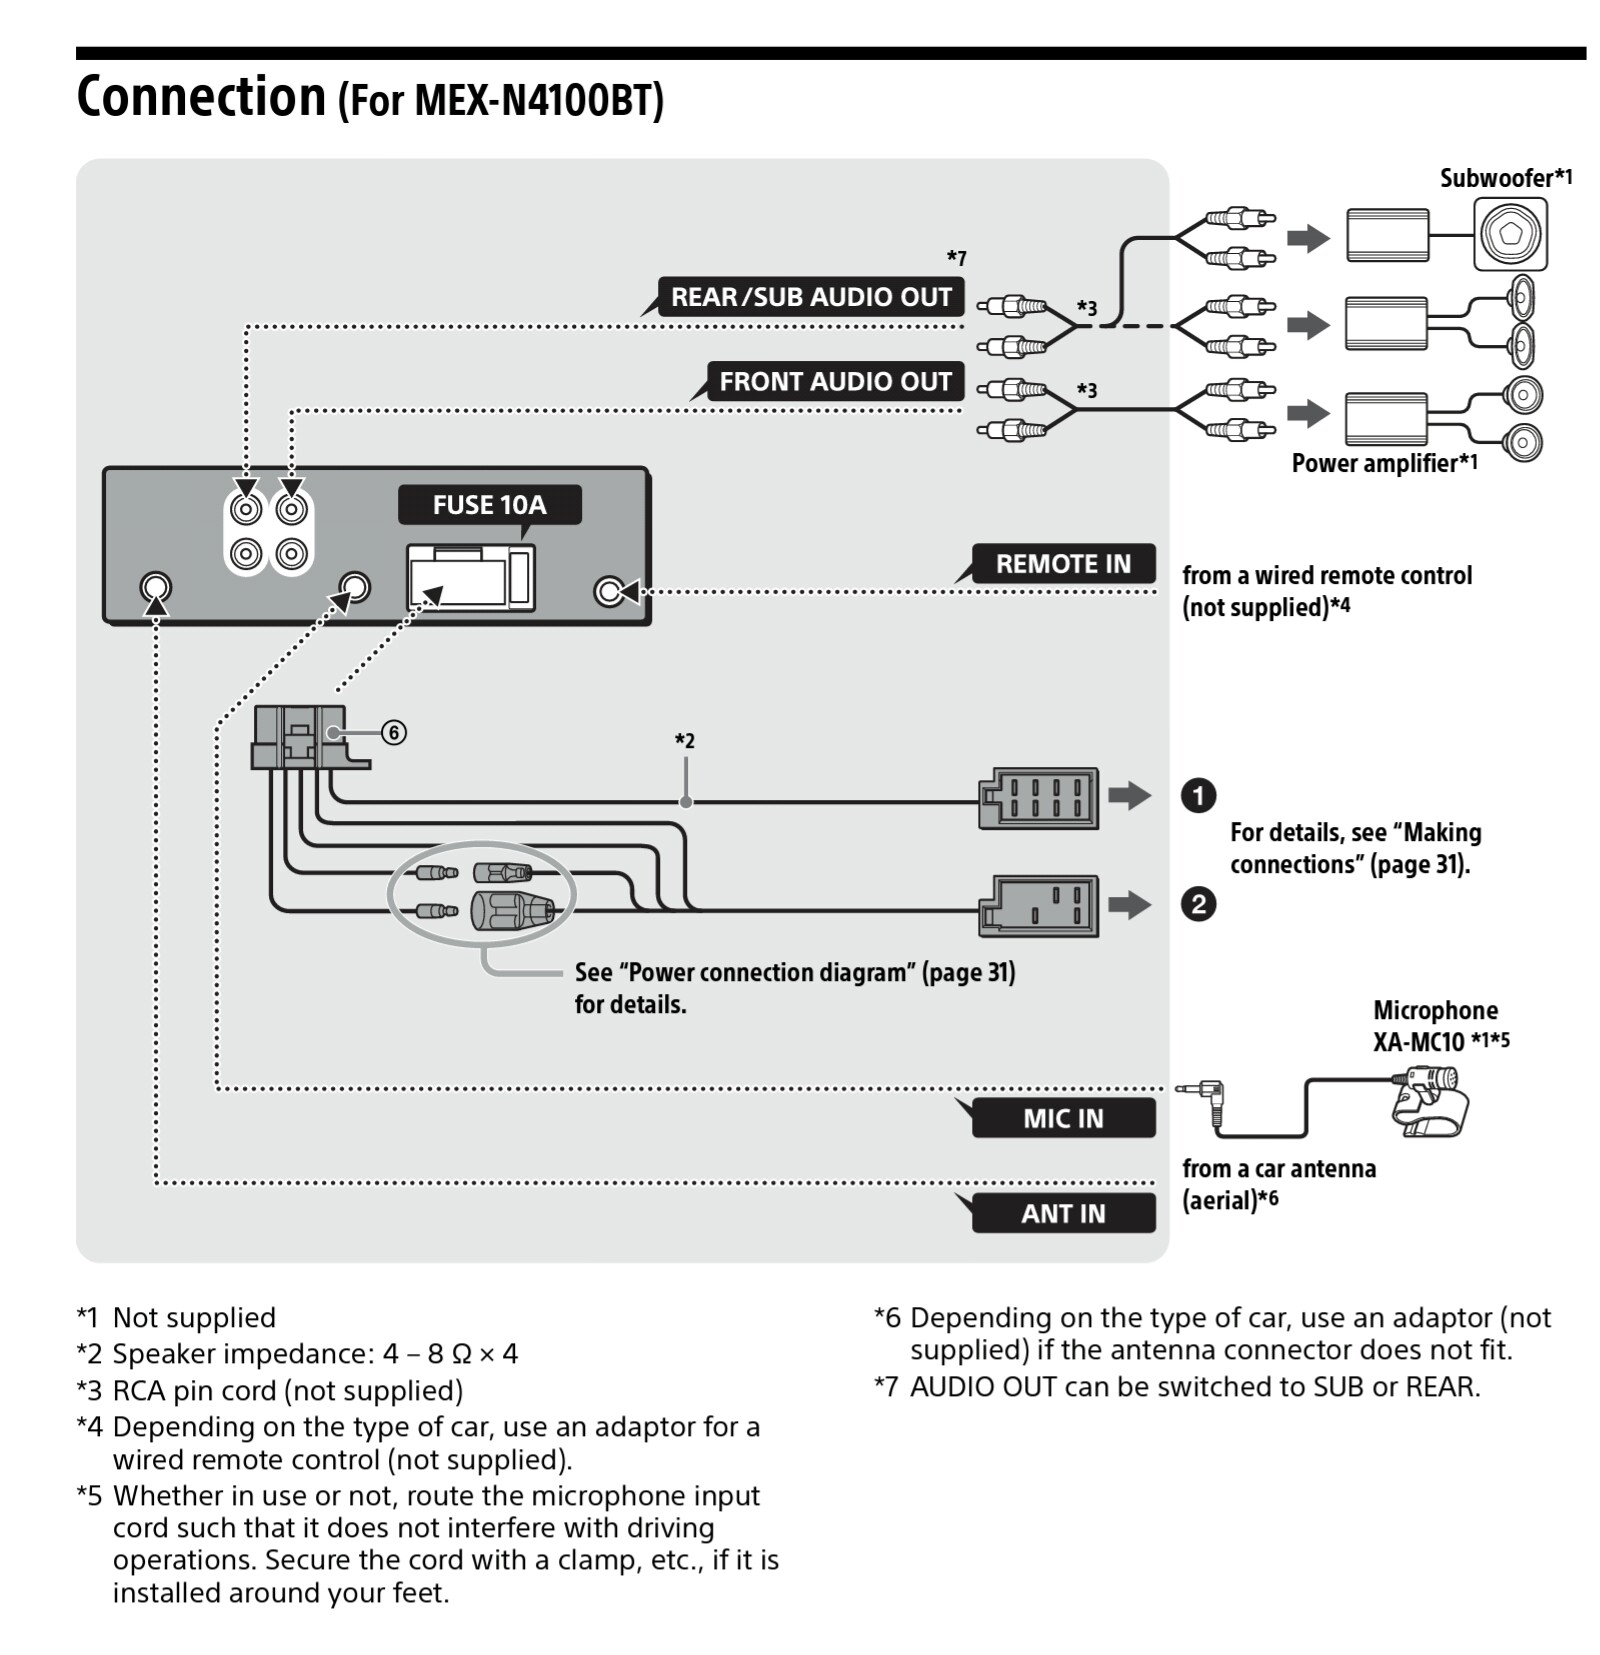 sony mex n4100bt wiring harness diagram sony image wired remote lead for mex n4100bt sony on sony mex n4100bt wiring harness diagram